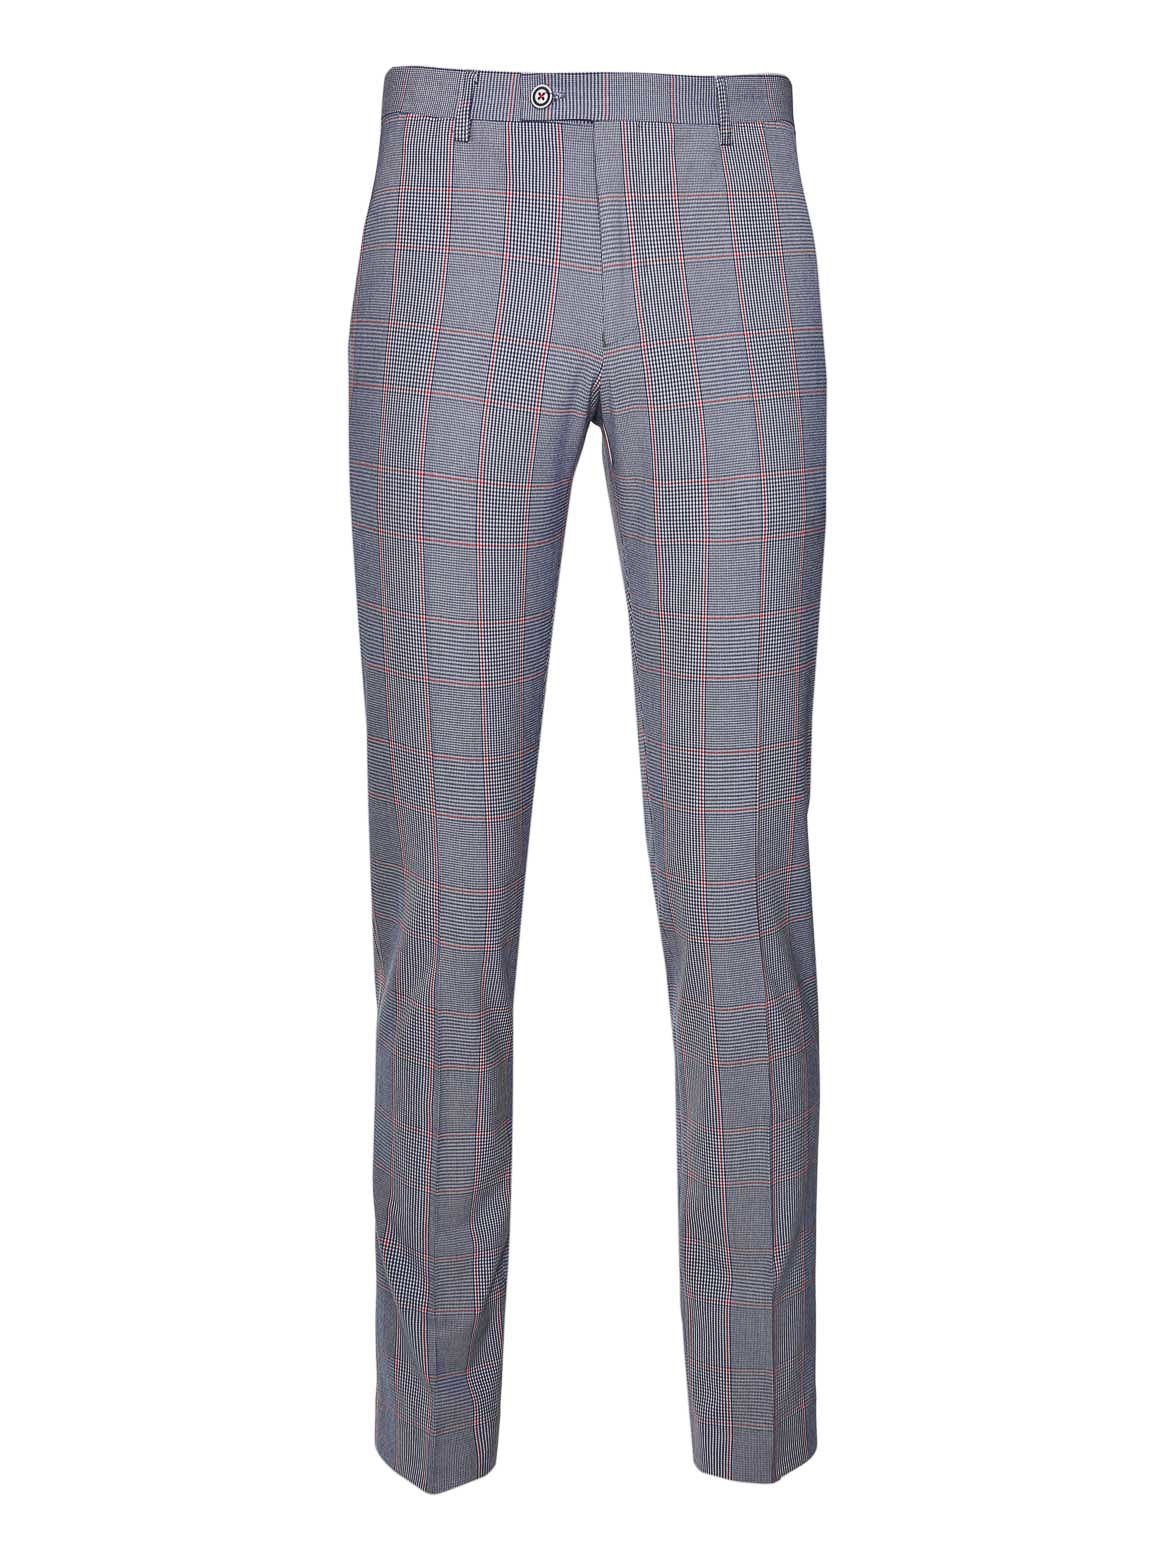 Camden Pants  - Blue Red Window Plaid